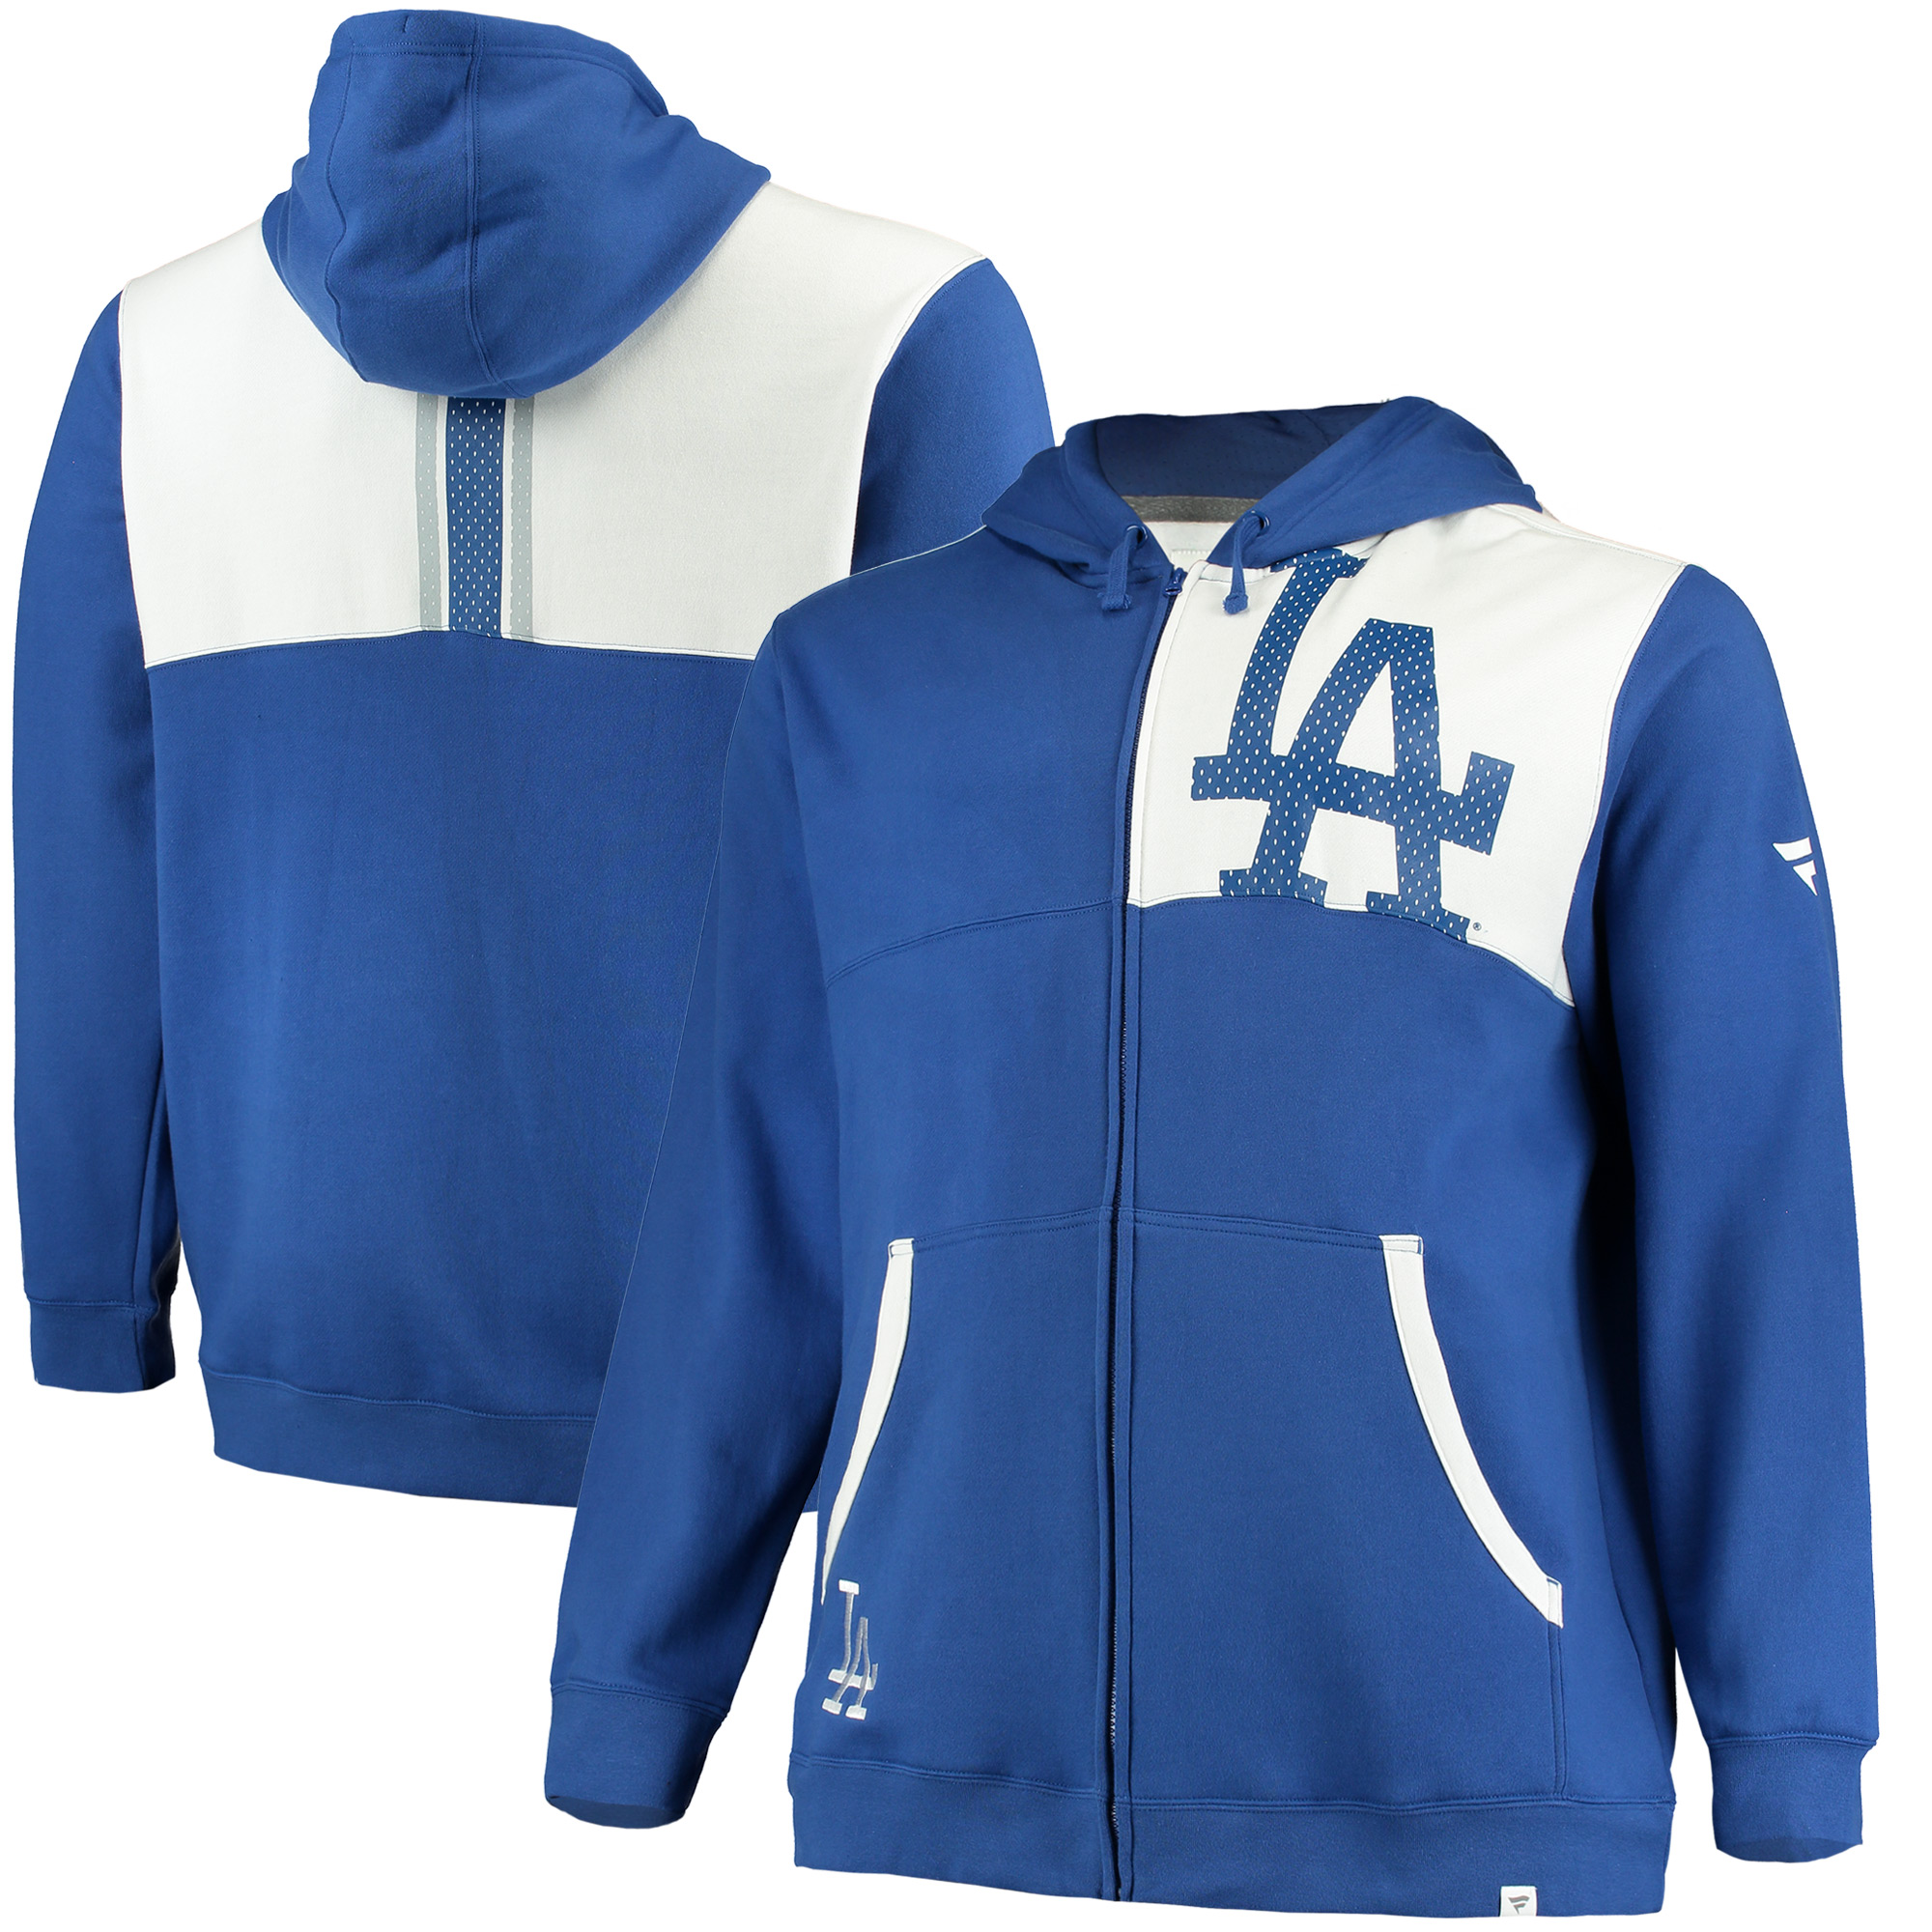 Men's Fanatics Branded Royal/White Los Angeles Dodgers Big & Tall Iconic Bold Full-Zip Hoodie